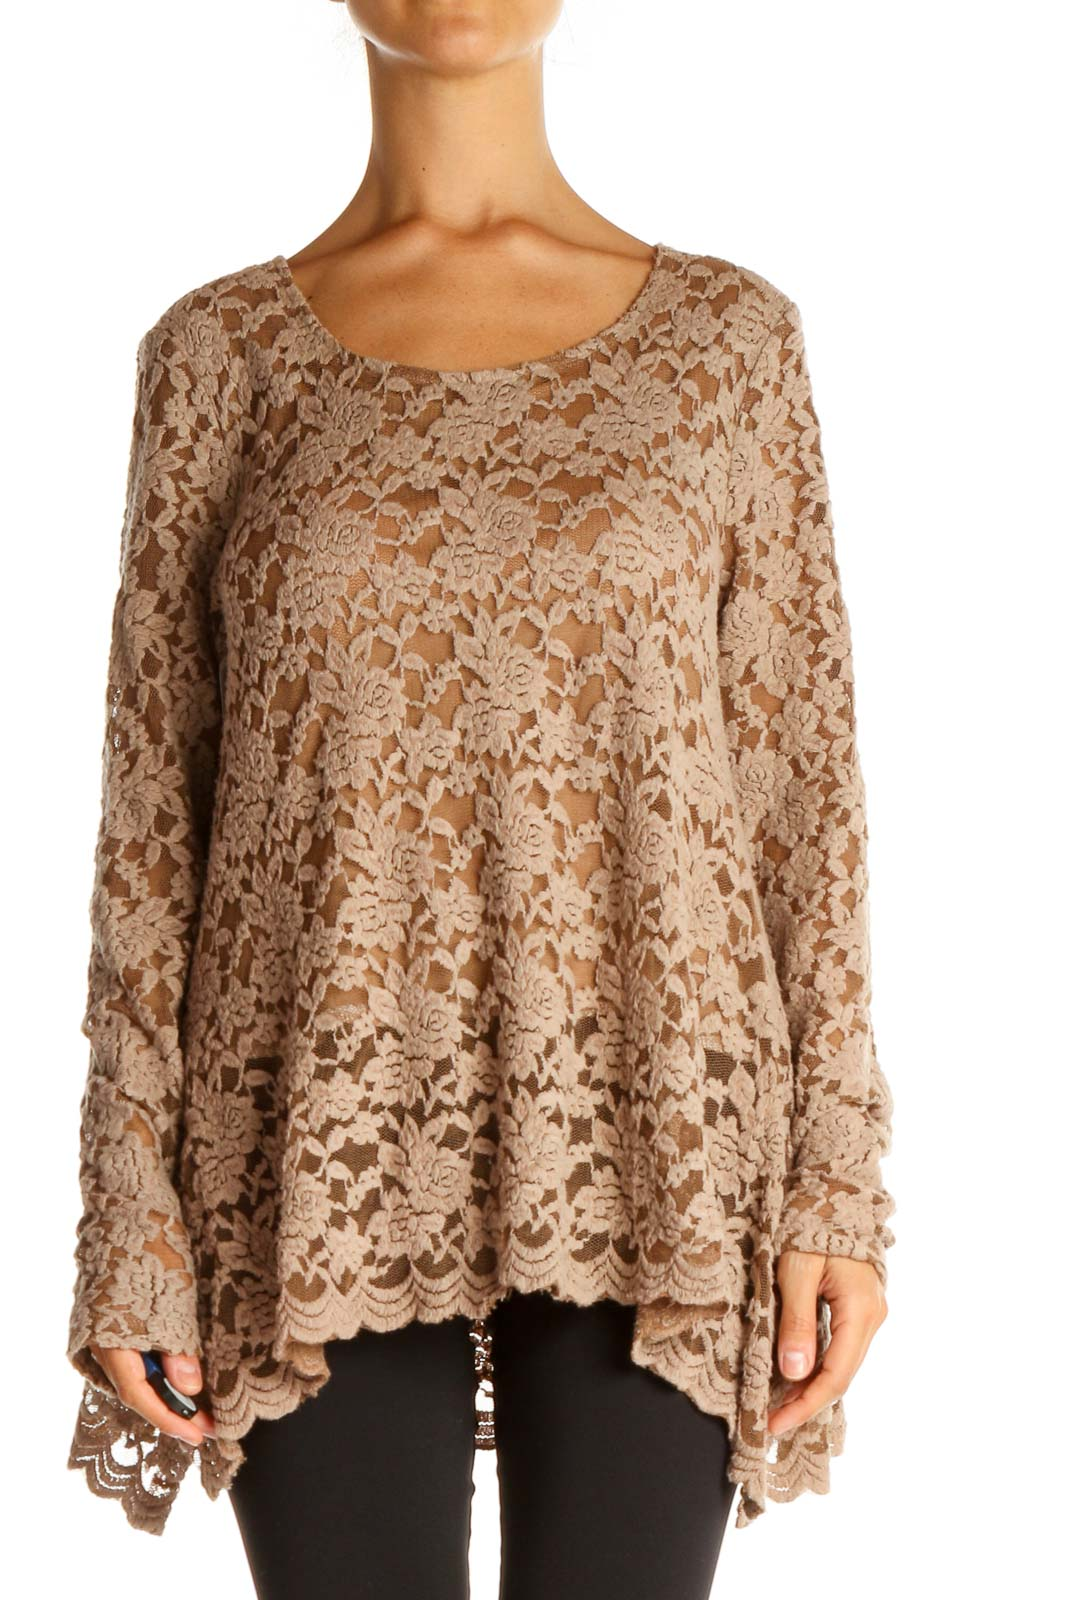 Beige Lace Casual Shirt Front